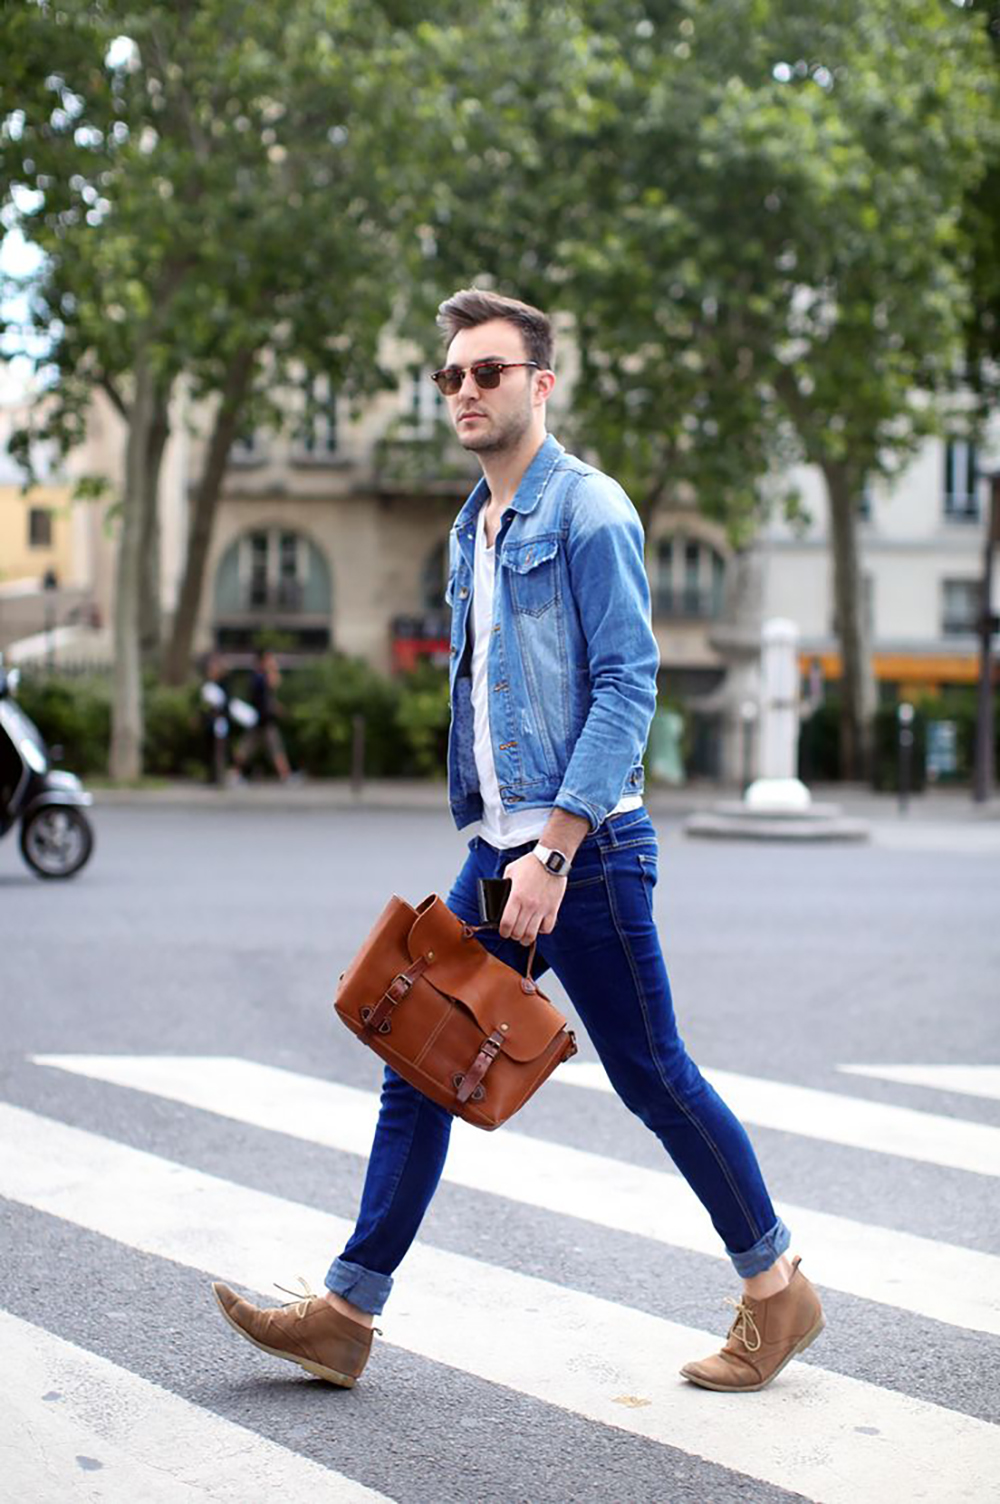 Modern-Denim-Jacket-for-Men-with-T-Shirt-and-Brown-Small-Boots.jpg